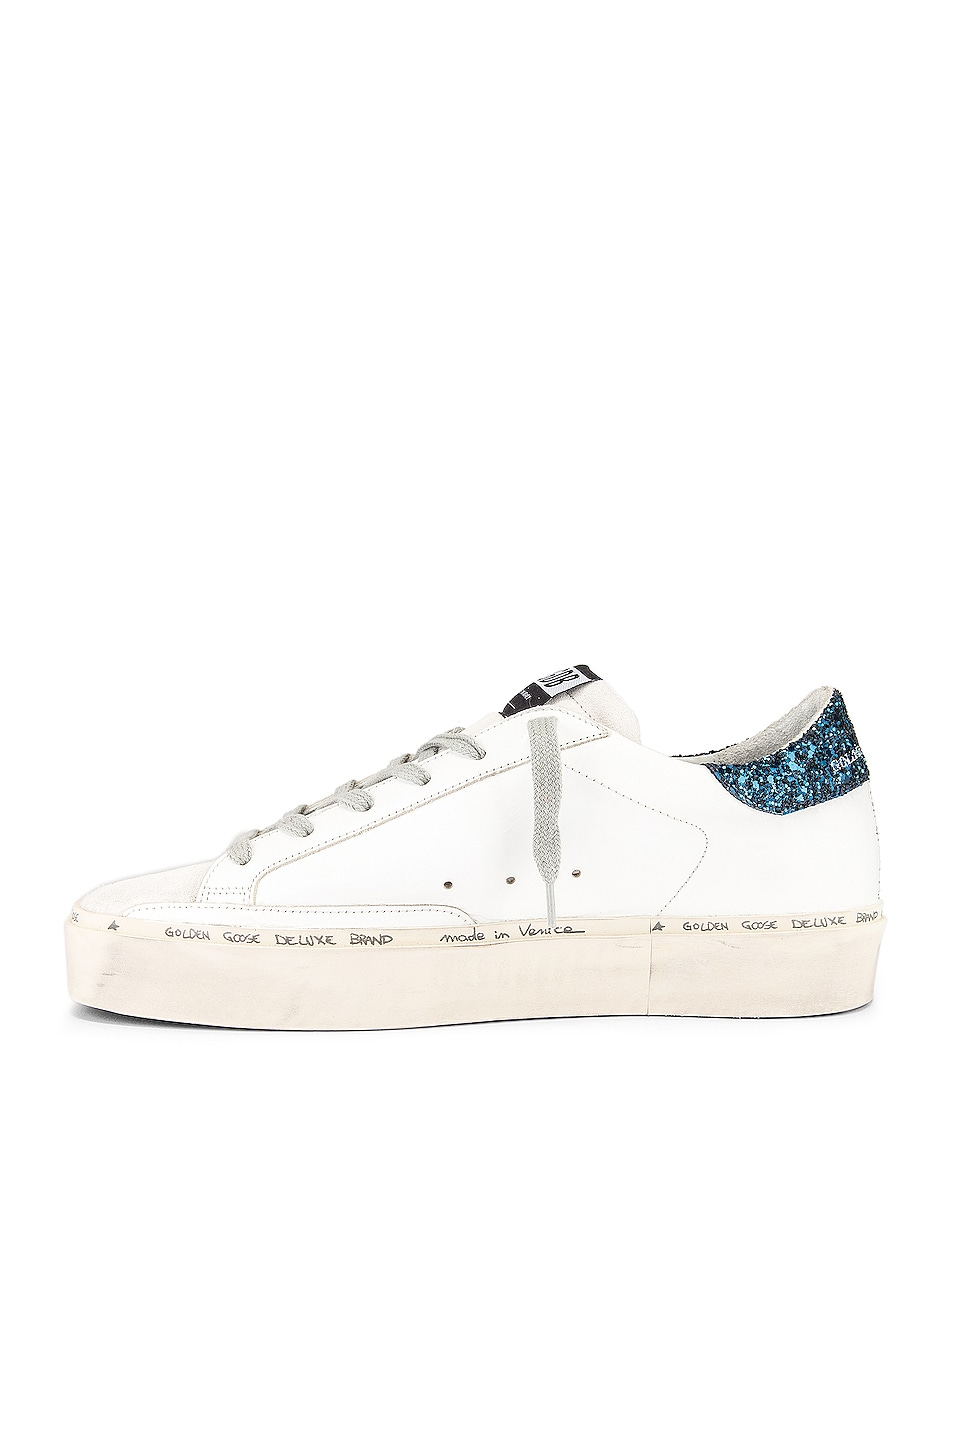 Image 5 of Golden Goose Hi Star Sneaker in White, Black & Blue Glitter